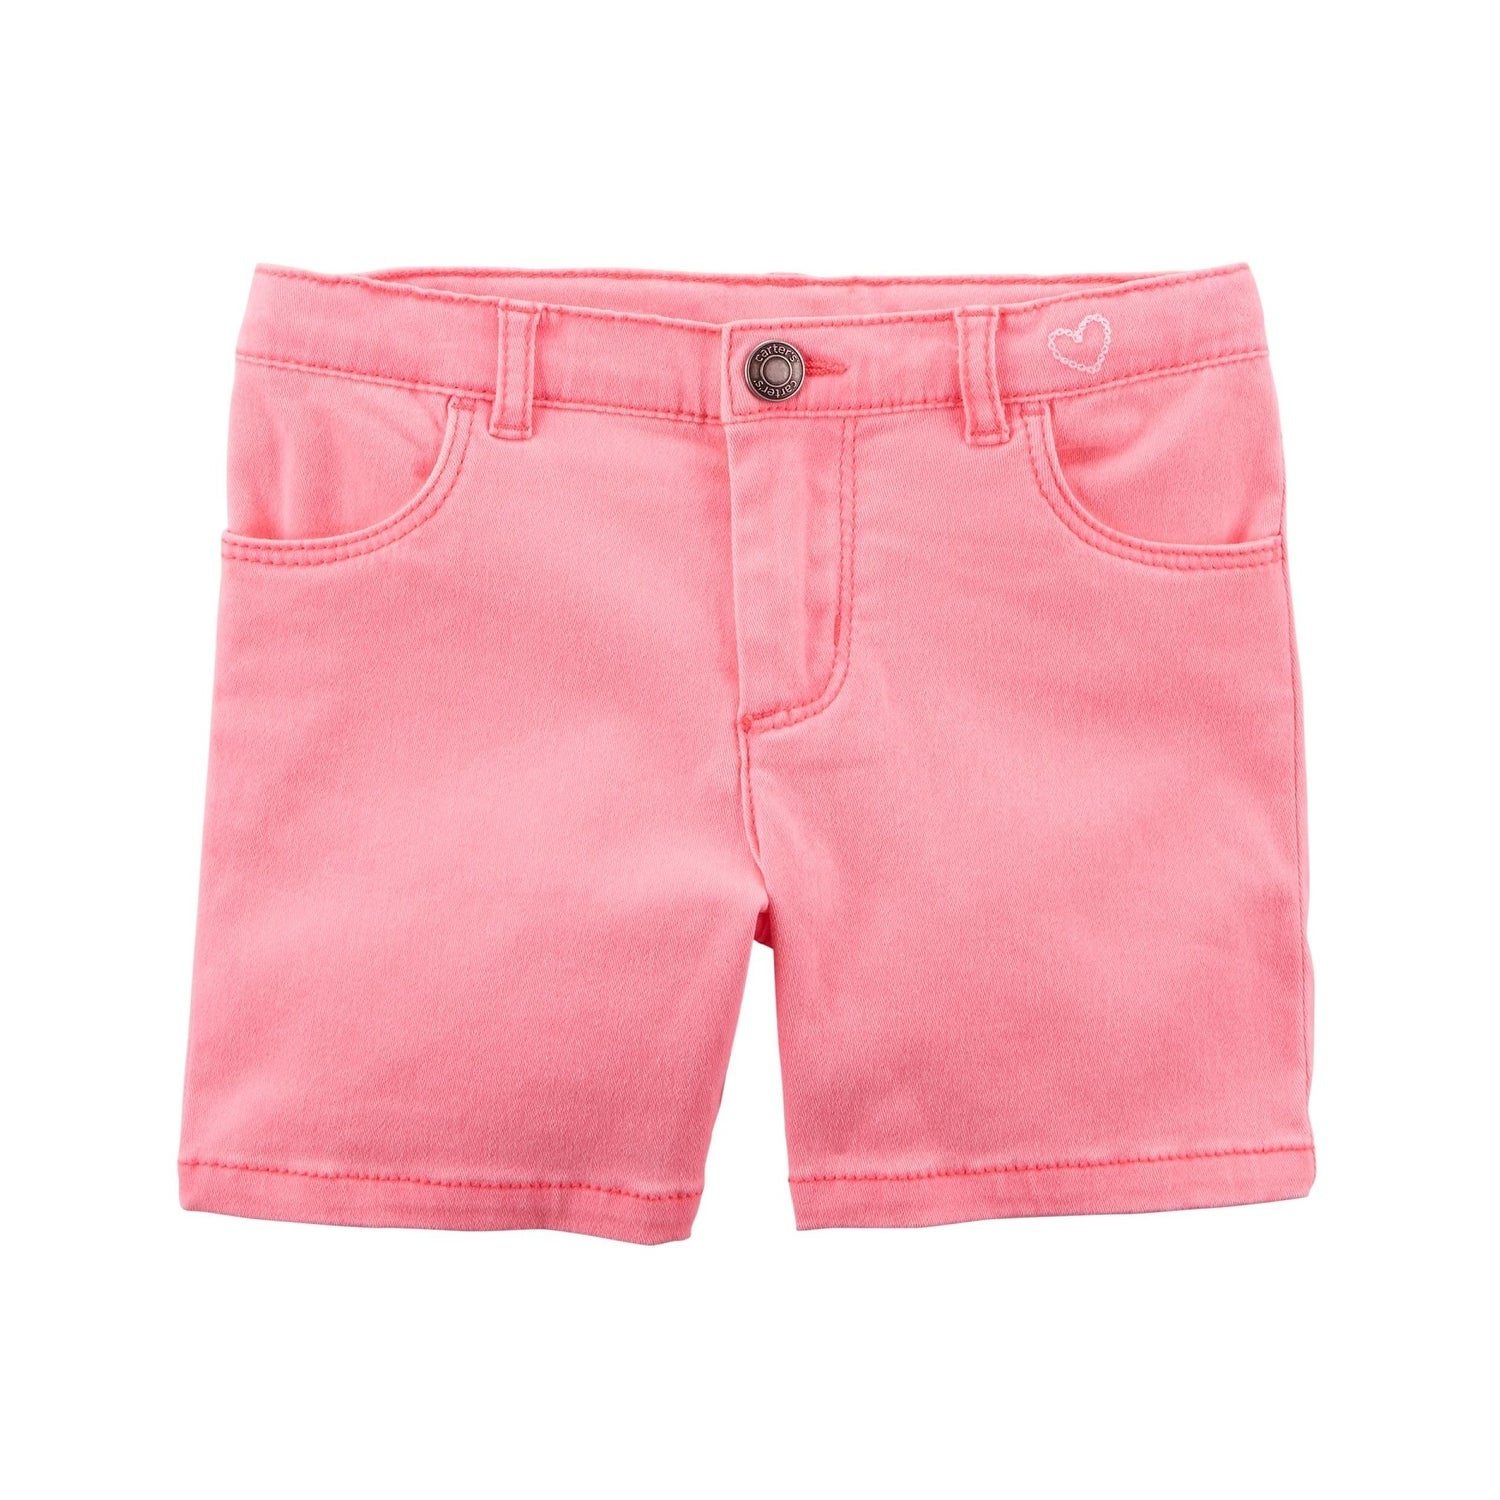 3db25280a Carter's Children's Clothing | Shop our Best Clothing & Shoes Deals Online  at Overstock